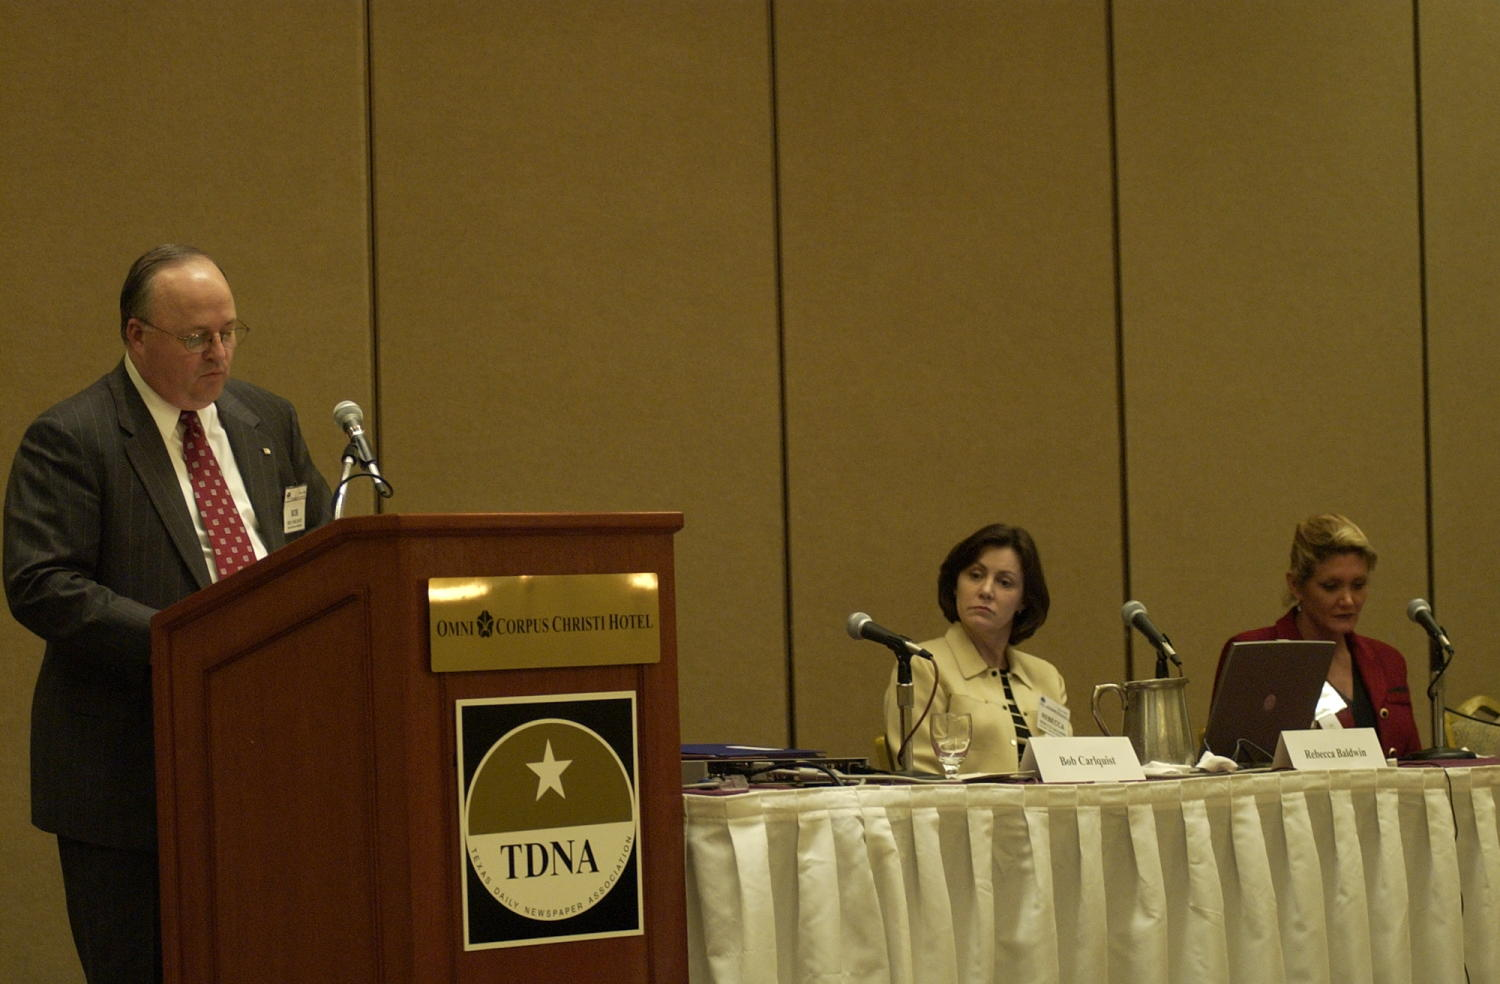 """[Bob Carlquist speaking at the TDNA conference in Corpus Christi, 2], Photograph of Bob Carlquist speaking to the conference attendees during the 2004 Texas Daily News Association annual conference held in Corpus Christi. Carlquist is seen standing behind the podium that reads, """"Omni Corpus Christi Hotel"""" and displays the TDNA emblem. Two women are seen sitting at the table to the right of the podium, the woman in yellow identified as Rebecca Baldwin by her name plate.,"""